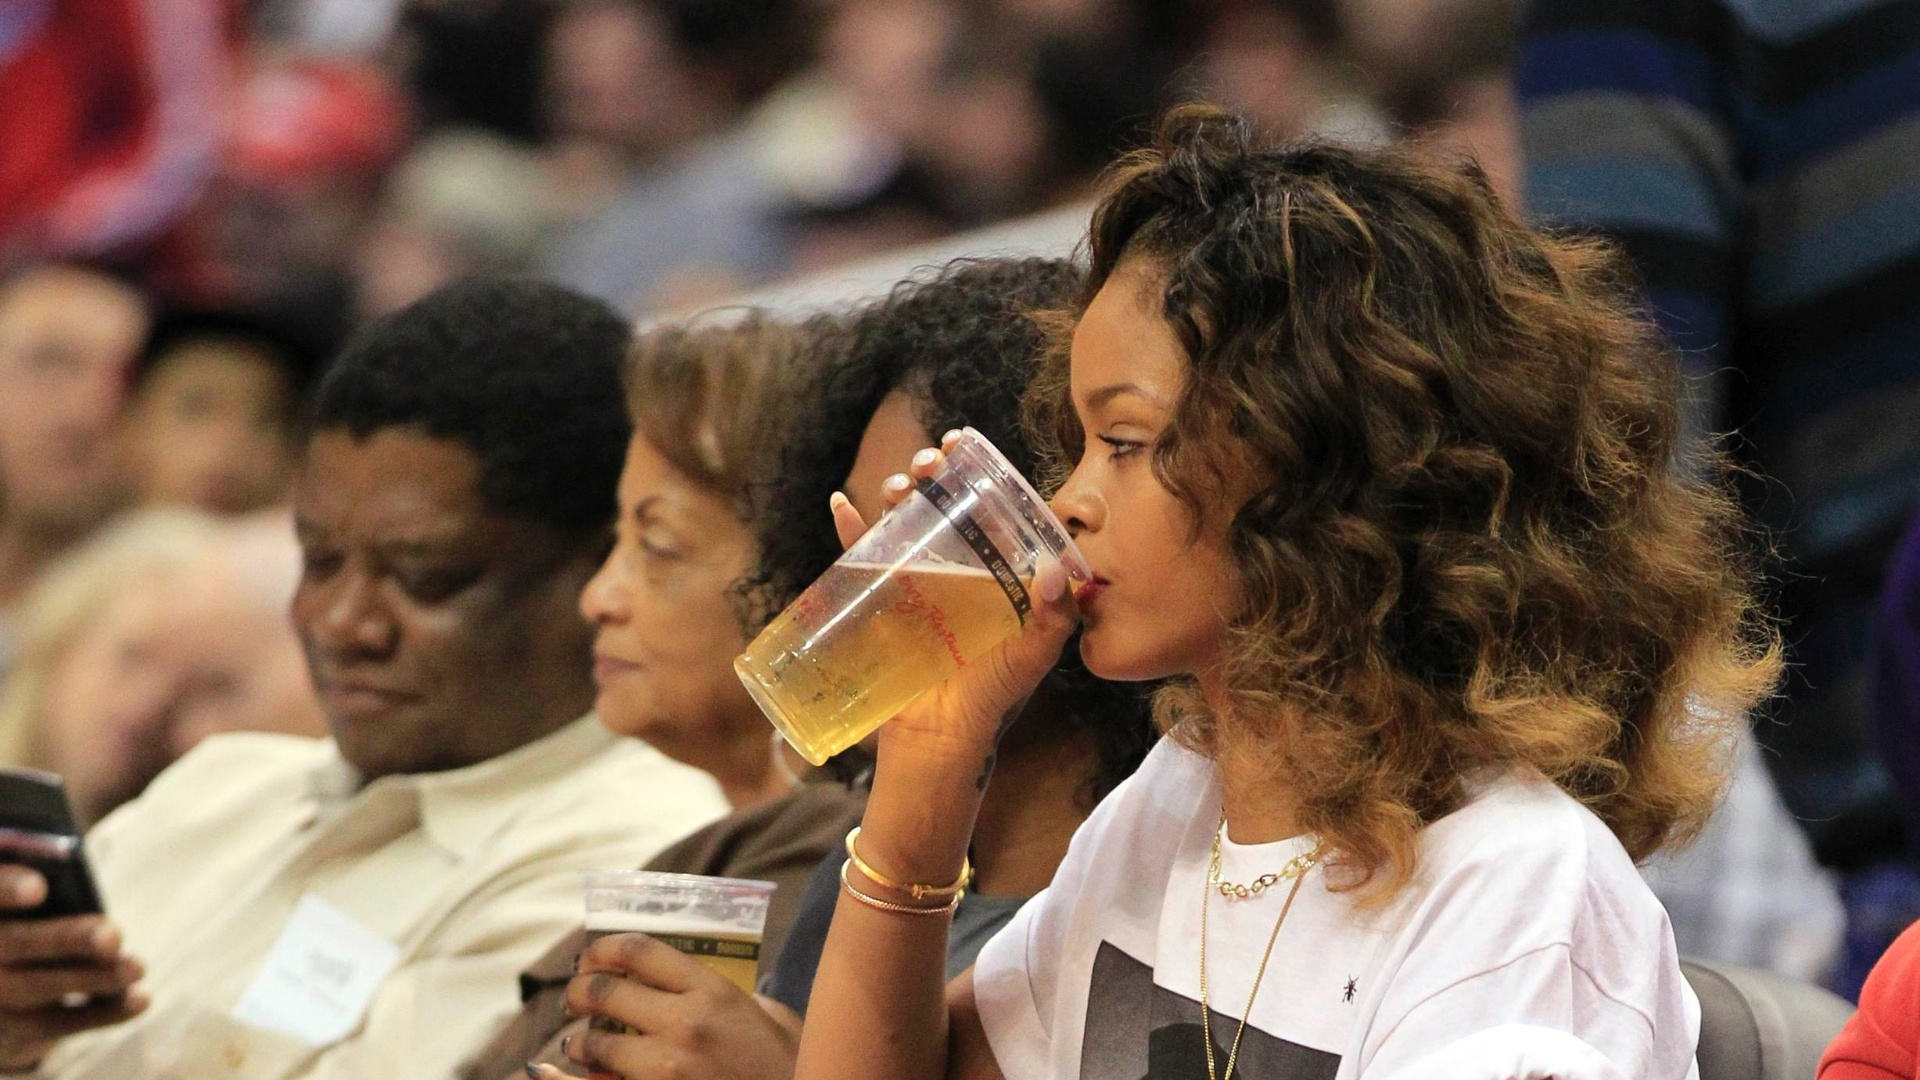 Rihanna bebe cerveja e acompanha a vitria do Los Angeles Clippers contra o Memphis Grizzlies pela NBA